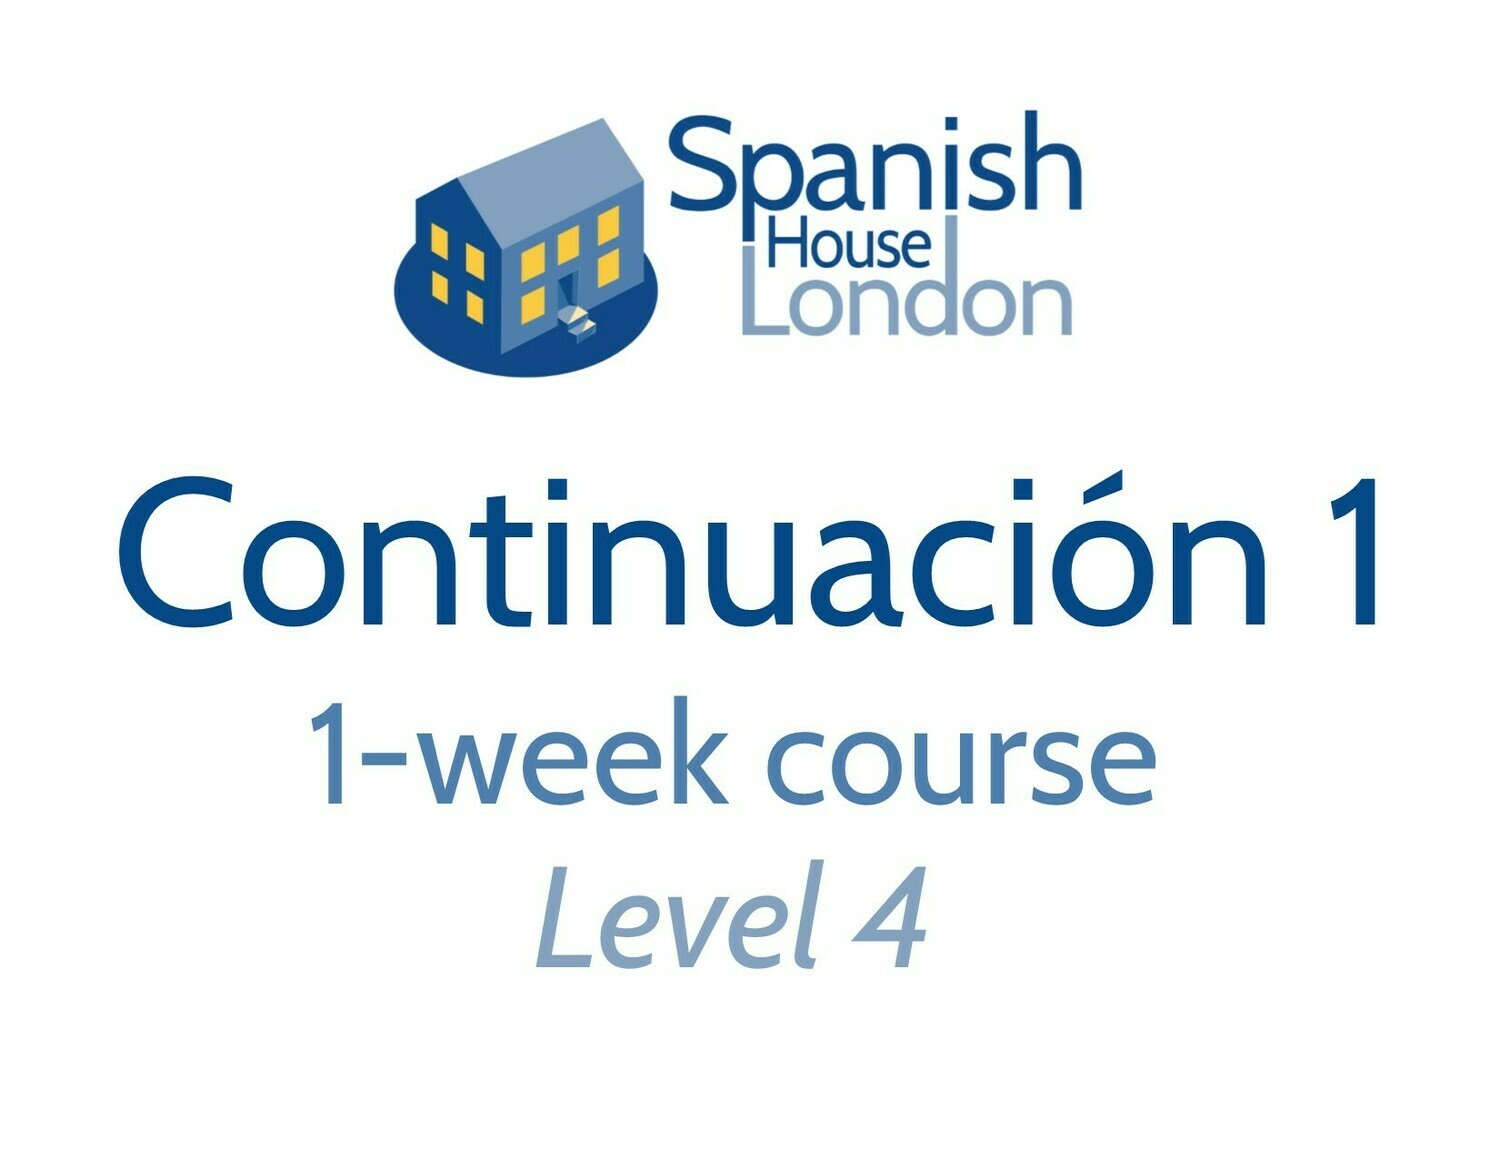 Continuación 1 One-Week Intensive Course starting on 25th November at 10am in Clapham North